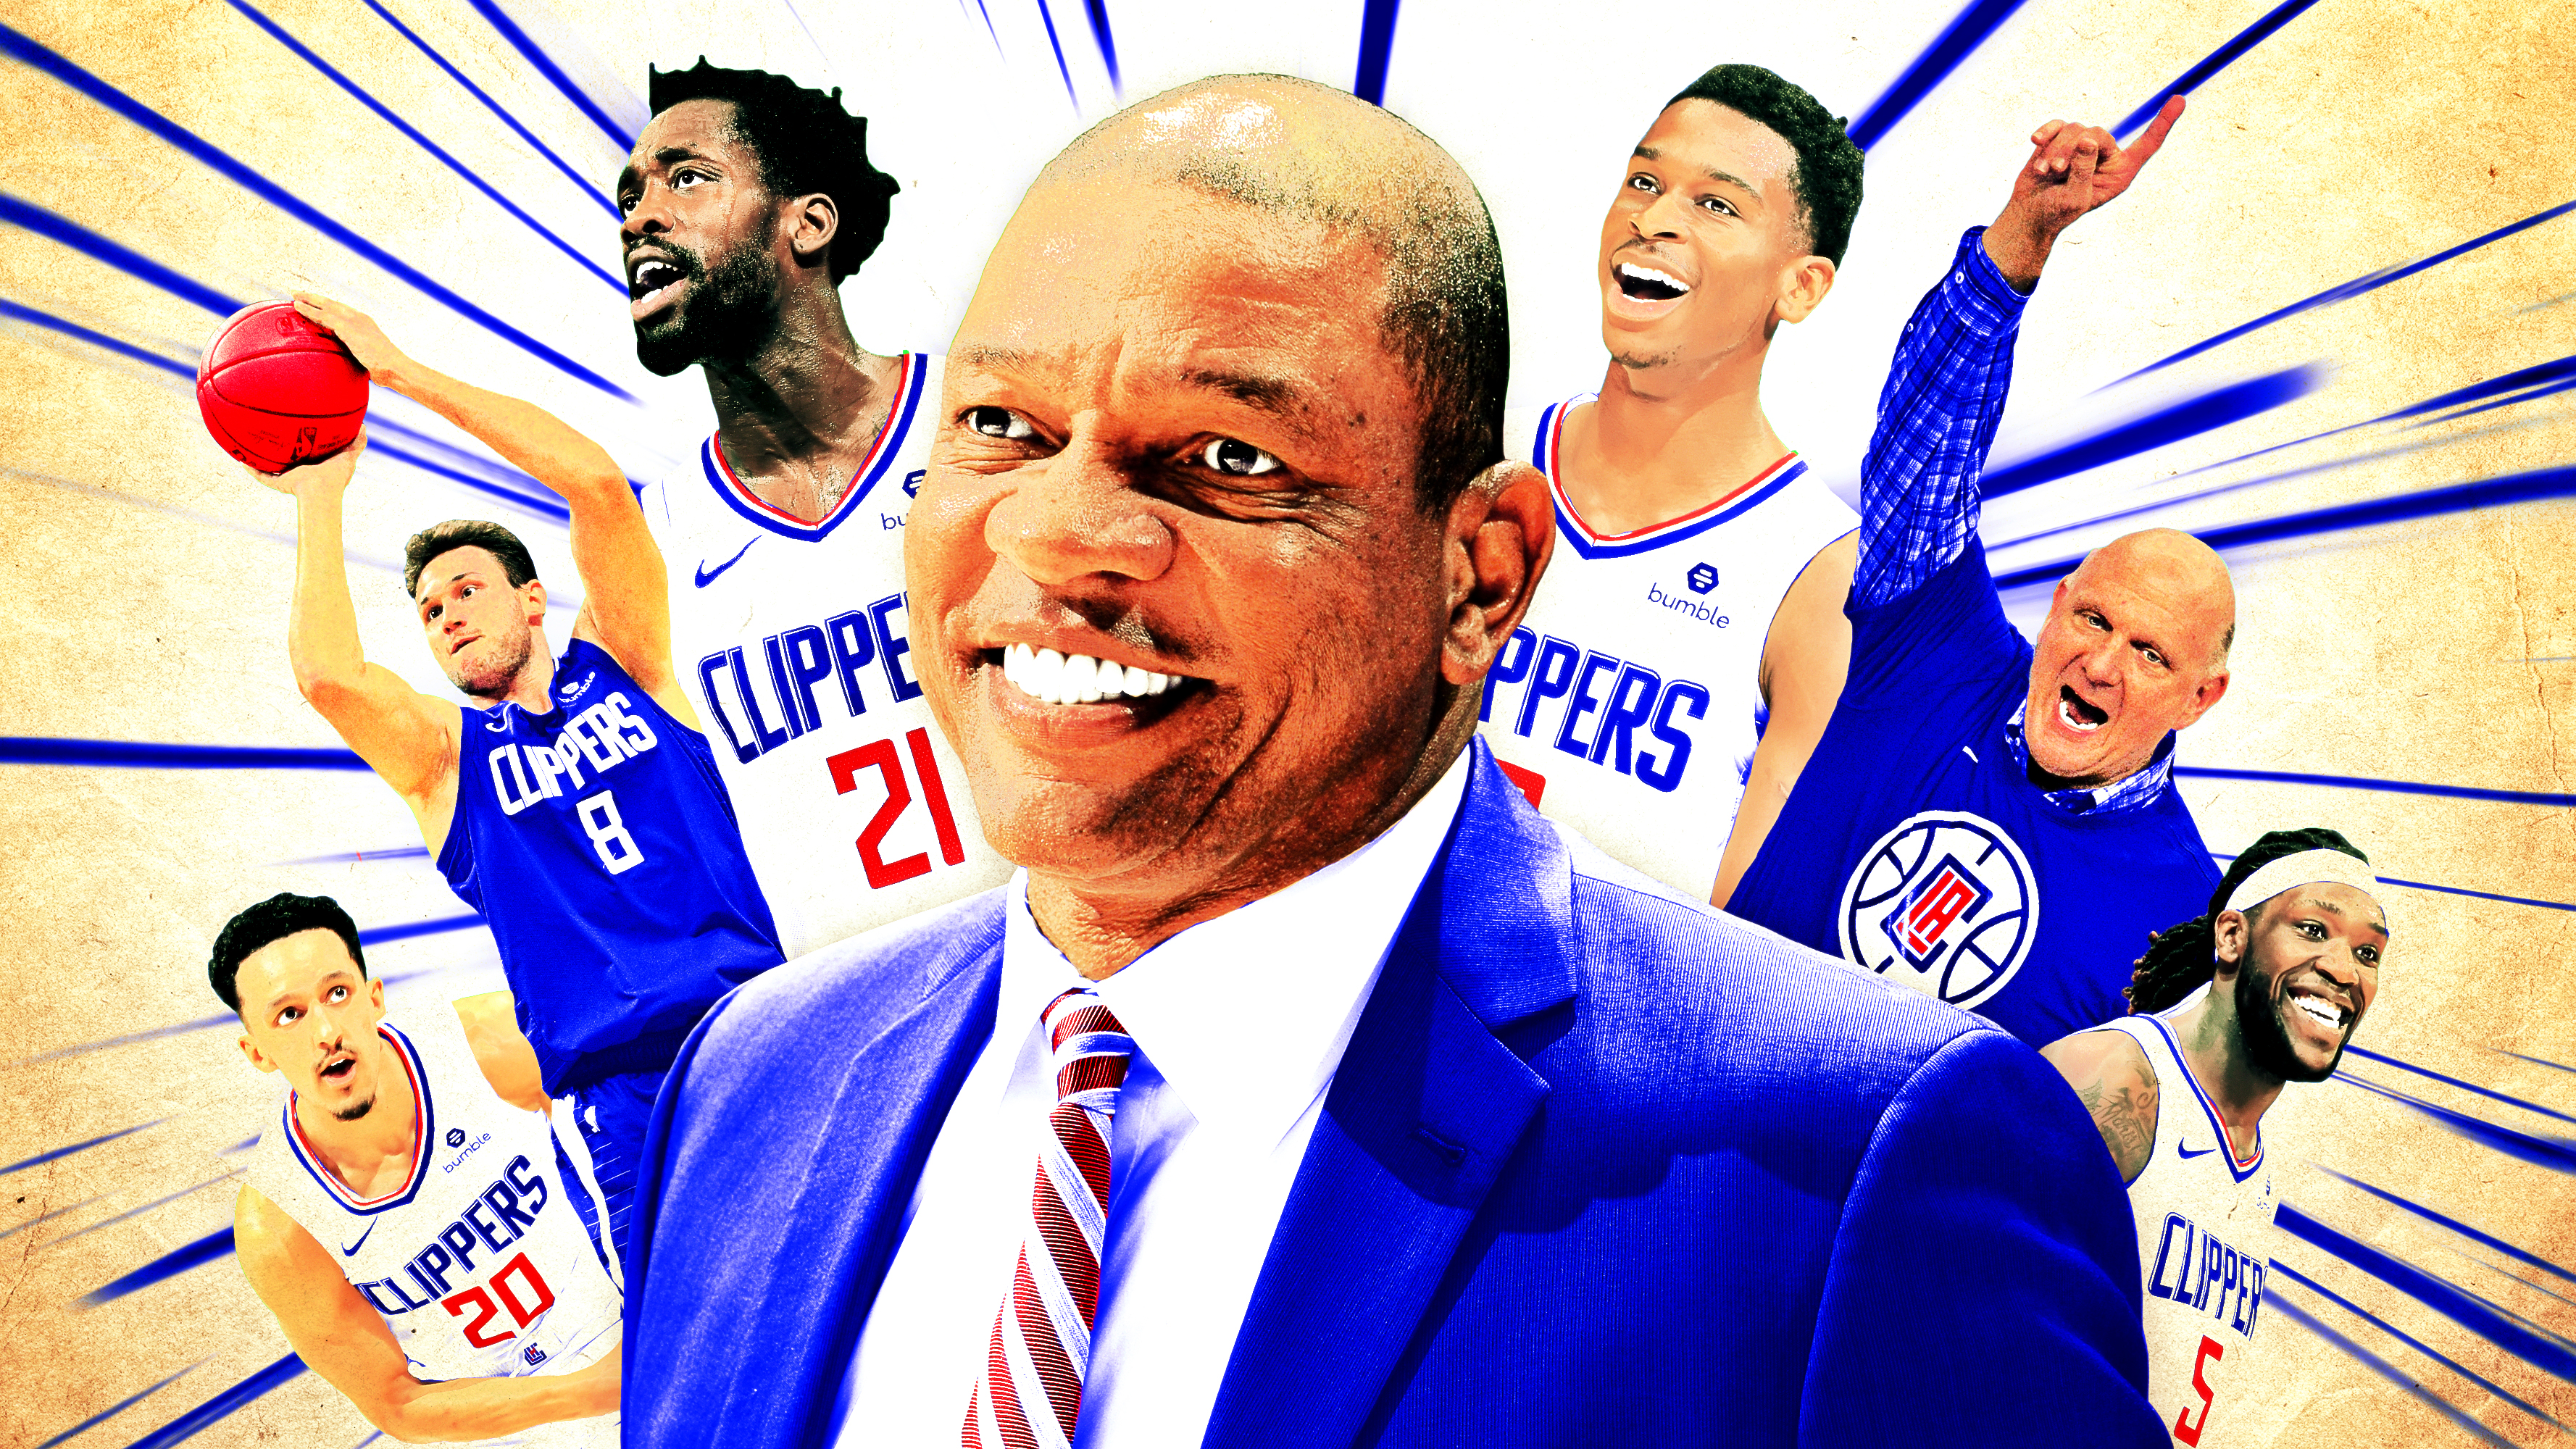 f4cfd756edc How Doc Rivers Pulled Off the Coaching Job of His Career - The Ringer